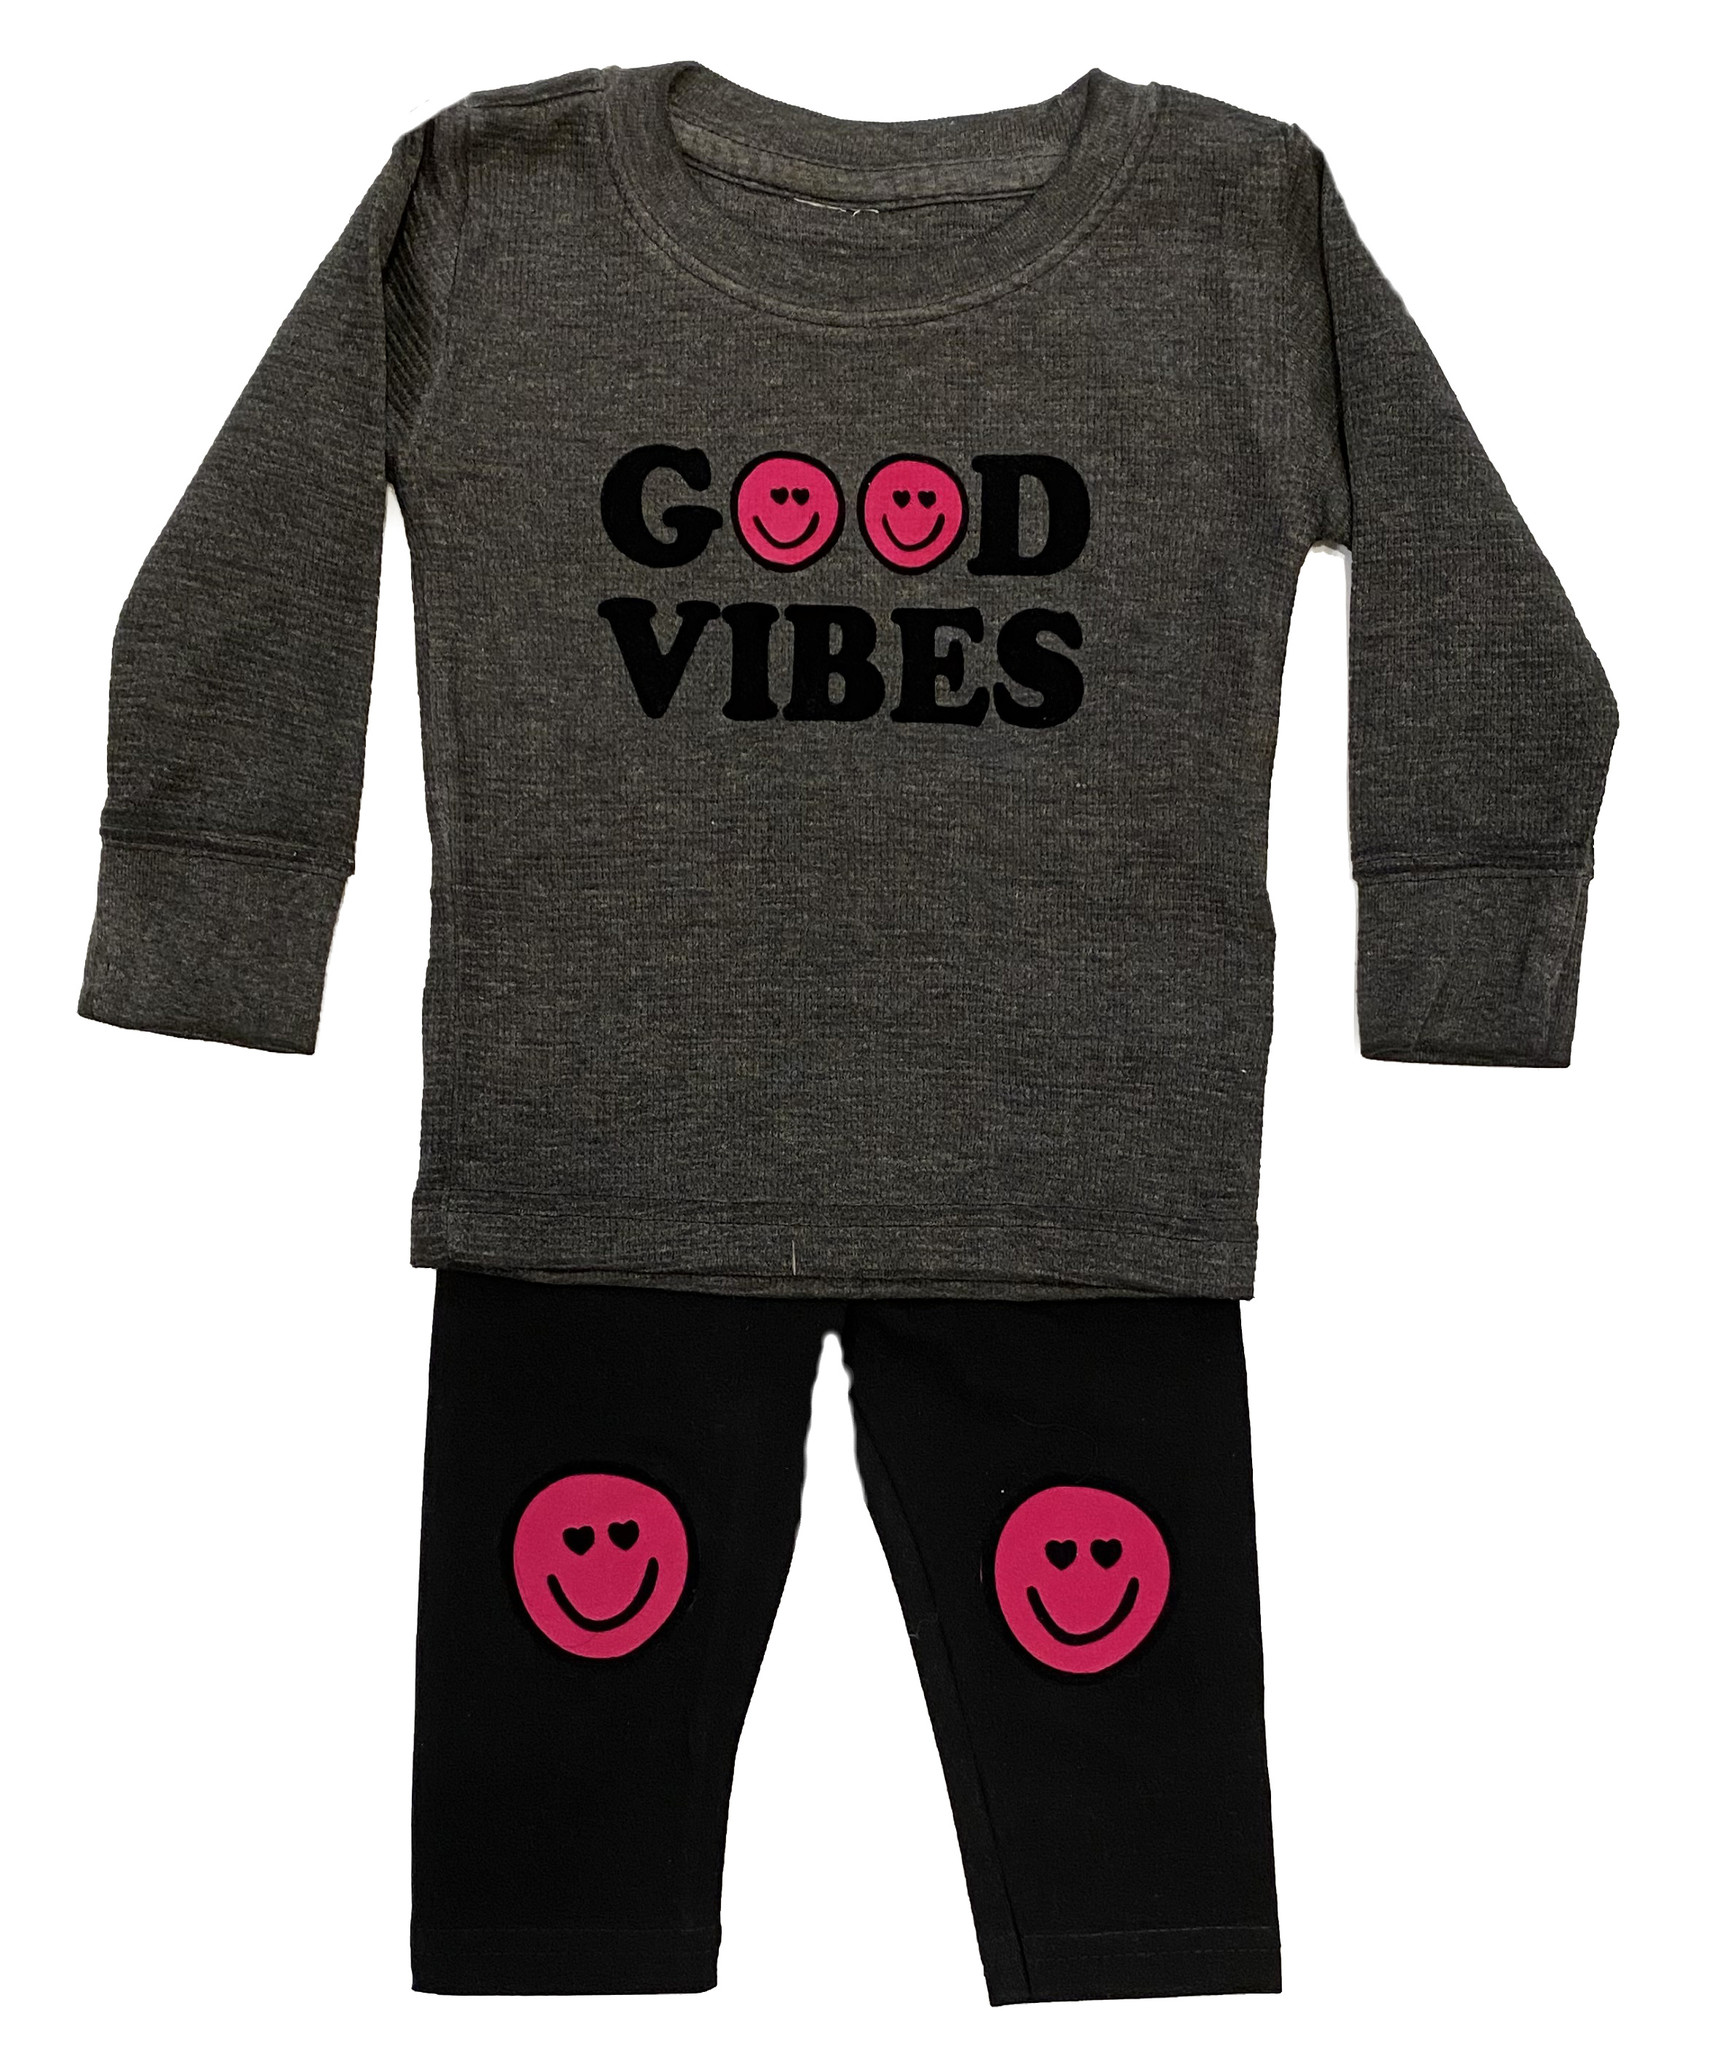 Small Change Grey/Pink Good Vibes Set